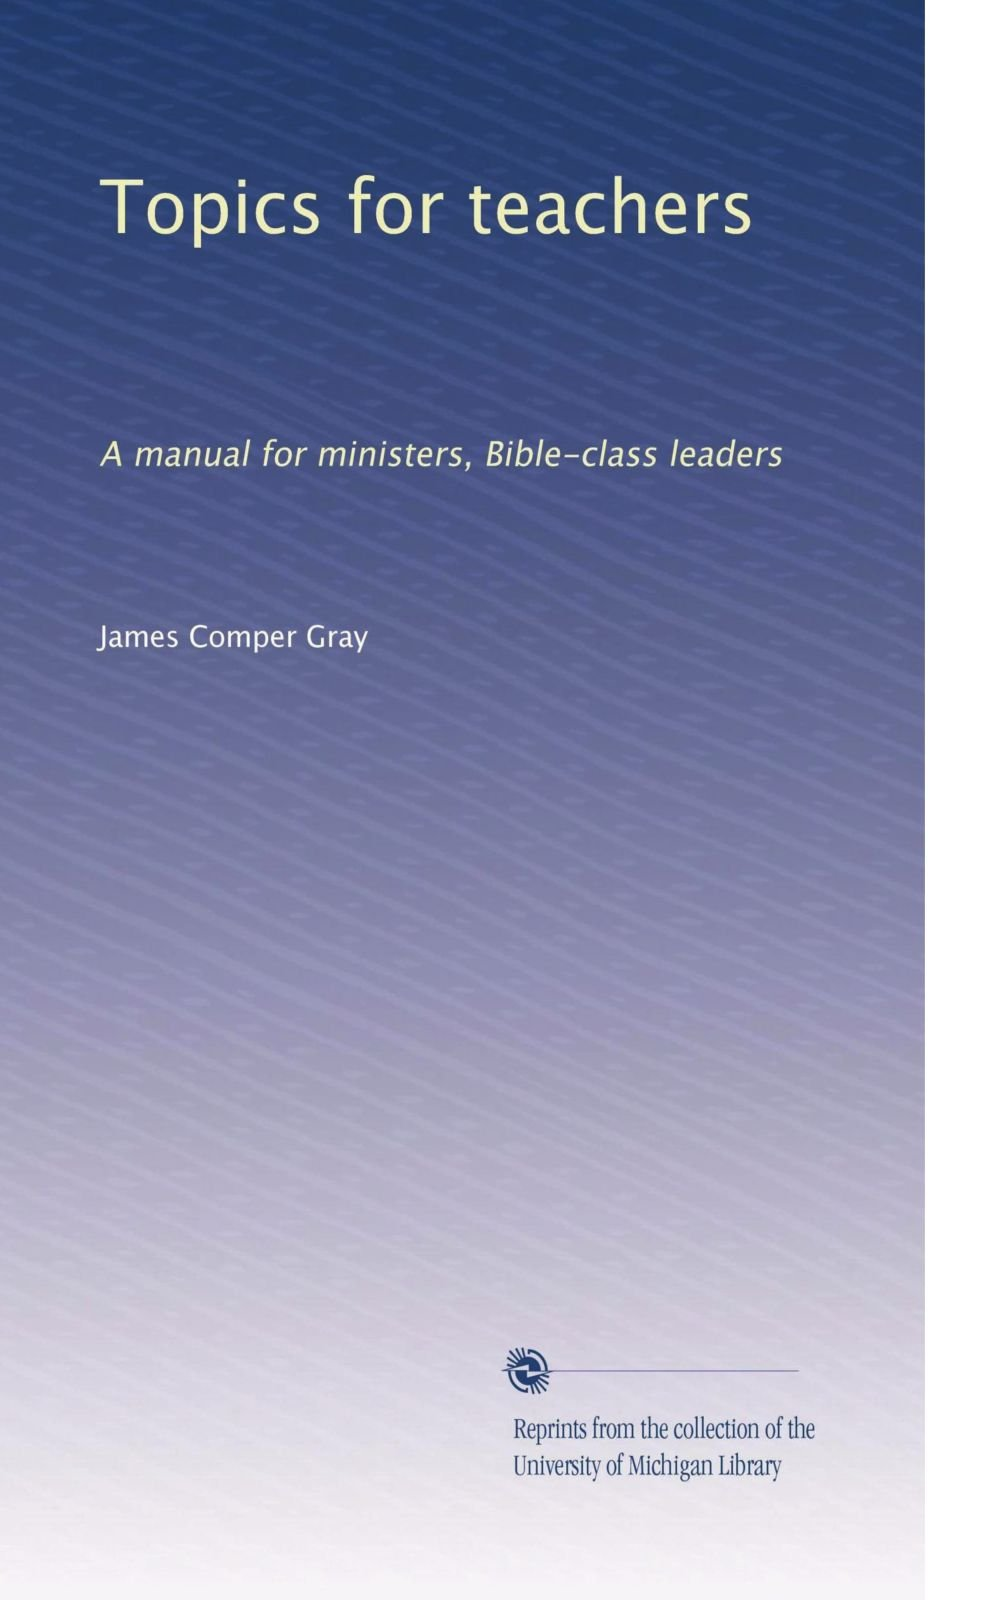 Topics for teachers: A manual for ministers, Bible-class leaders PDF